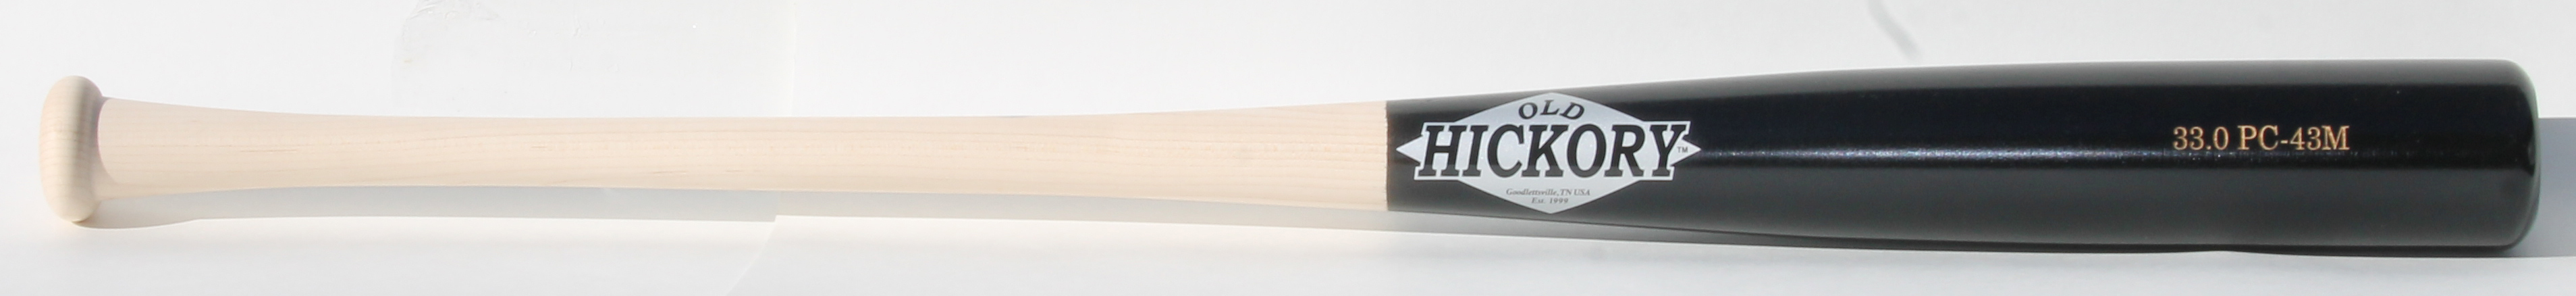 http://www.bestbatdeals.com/images/old_hickory_two_tone33.jpg